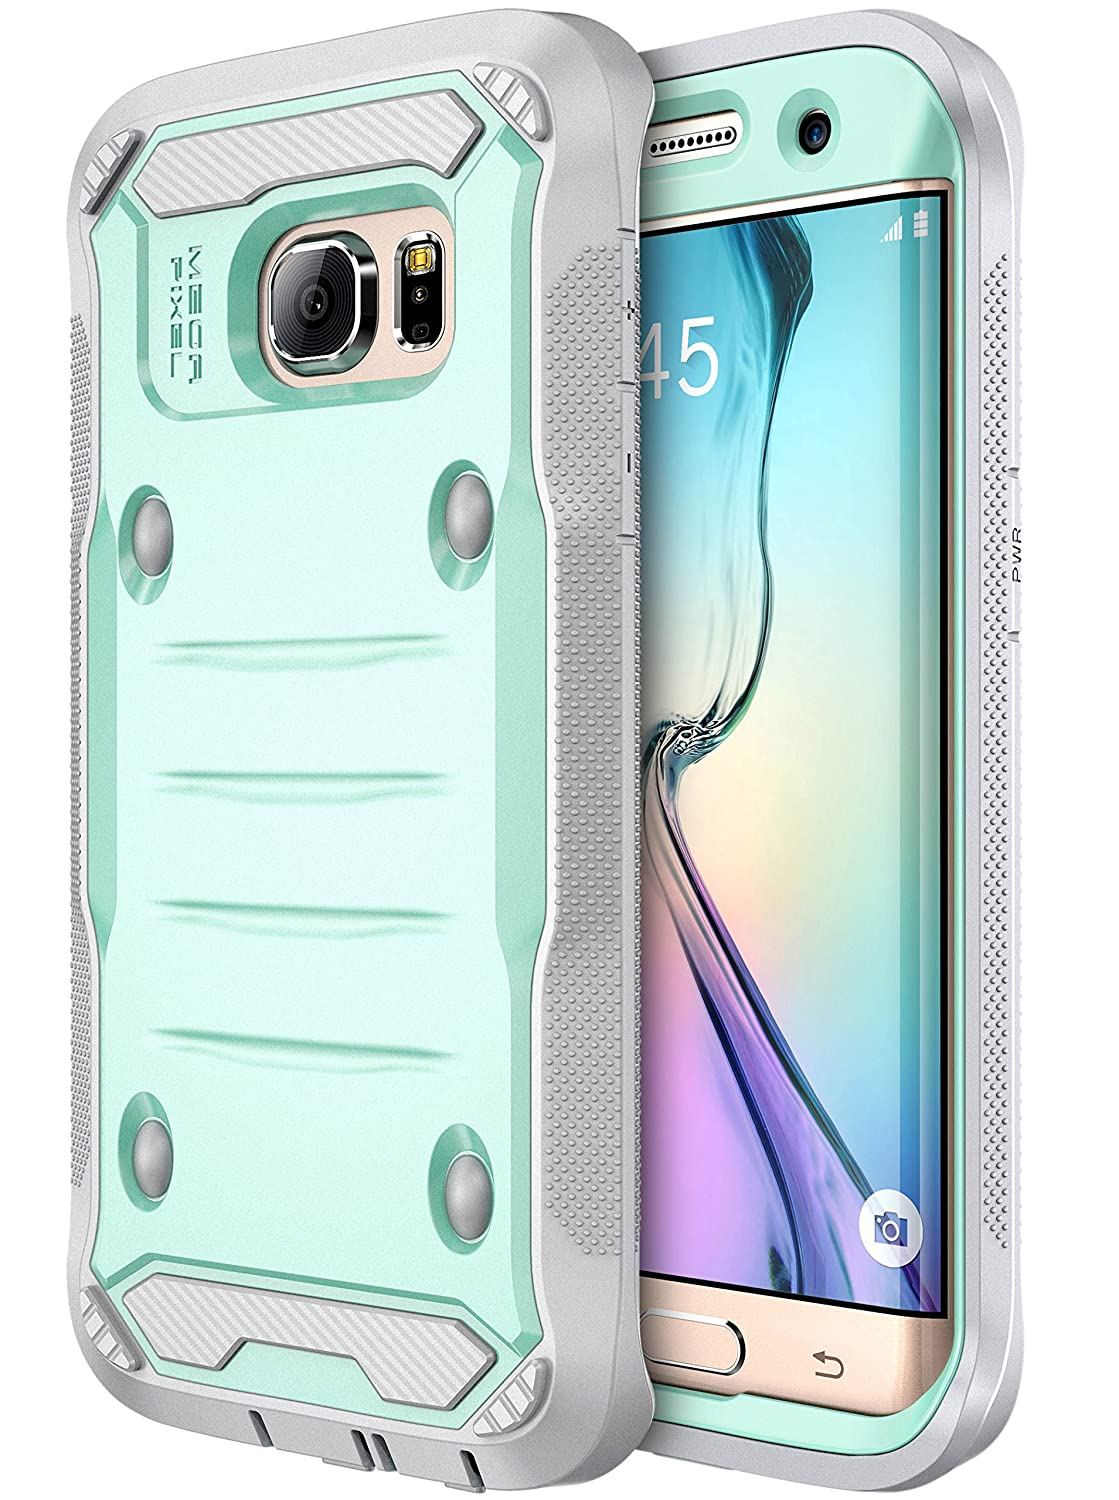 E LV Case for Galaxy S7 Edge Case Hybrid Armor Protection Defender (Without Built-in Screen Protector) Case for Samsung Galaxy S7 Edge - [Mint/Grey]